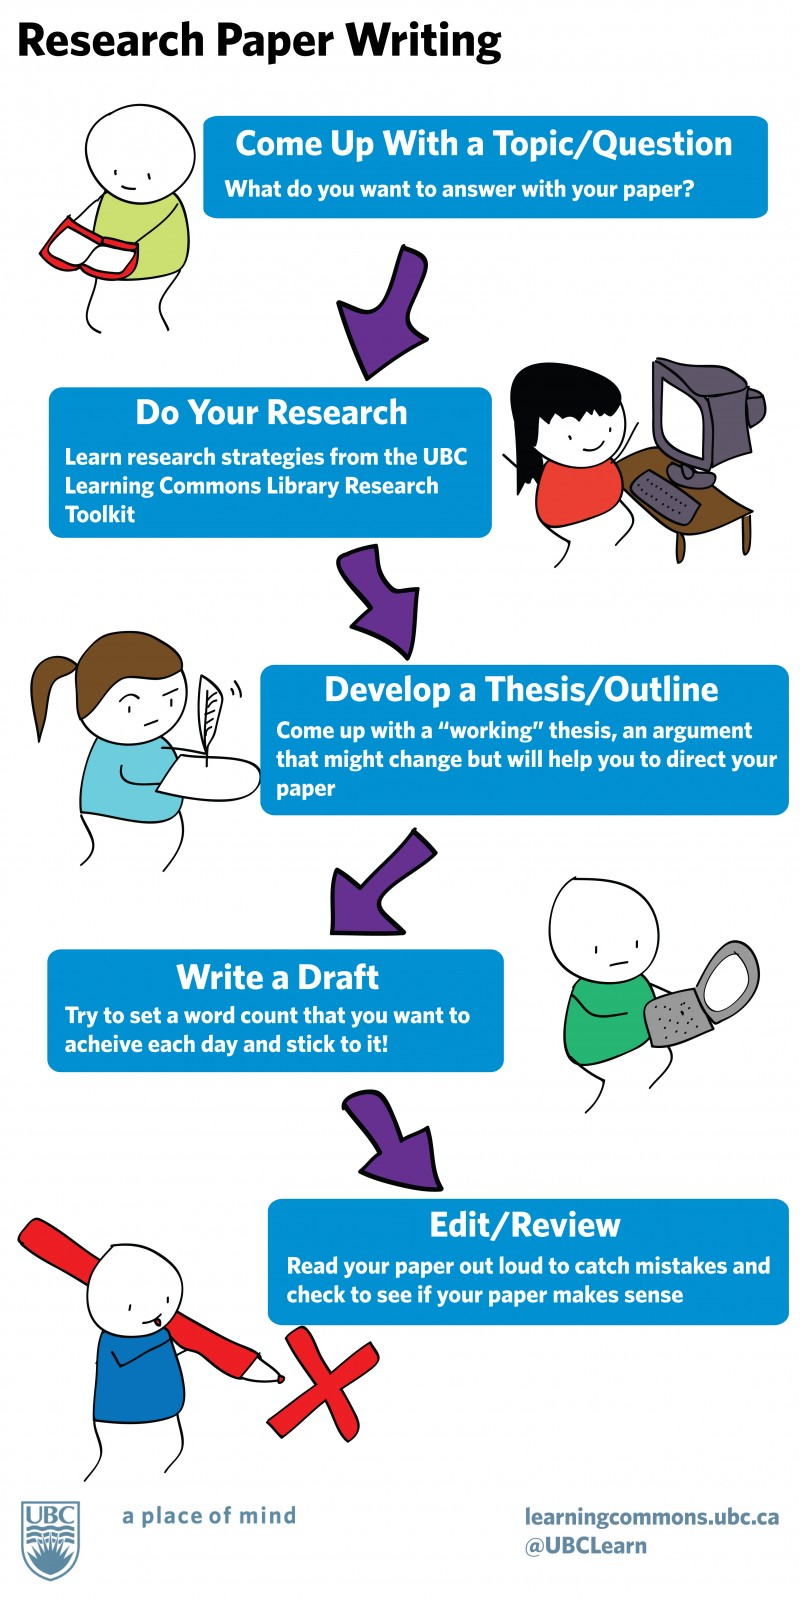 027 Writing Toolkit Infographic Free Download Researchs On Education Stunning Research Papers Full